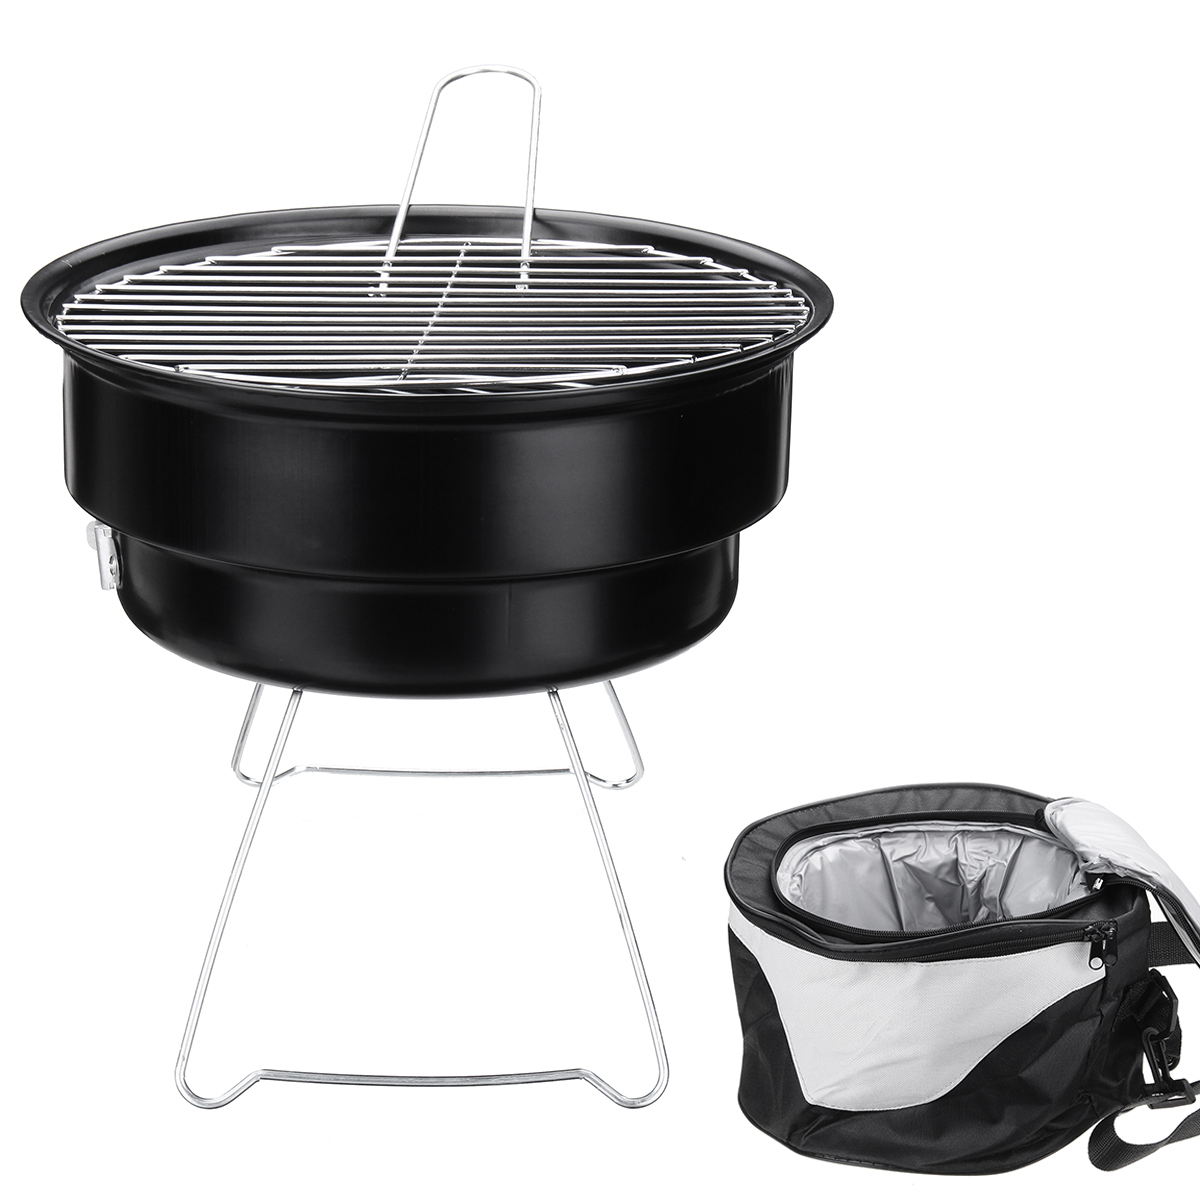 2 In 1 Portable Barbecue Oven Folding BBQ Grill With Cooler Bag Camping  Hiking Picnic | BidderFace